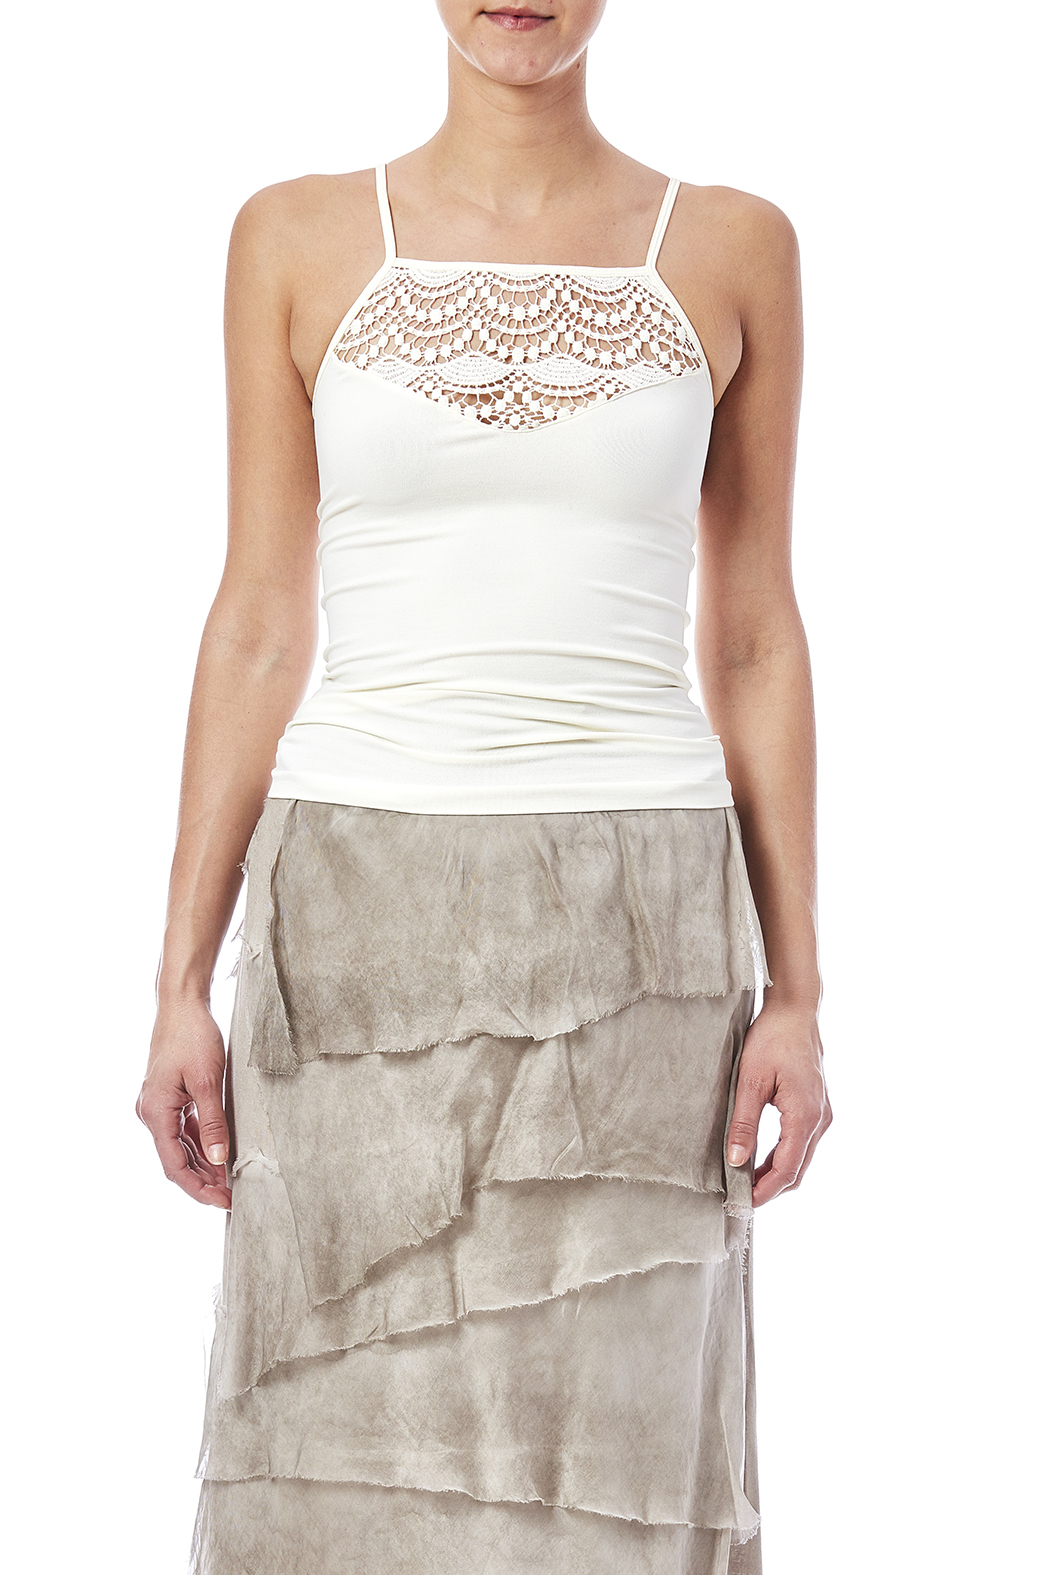 Suzette Crochet Cami - Side Cropped Image